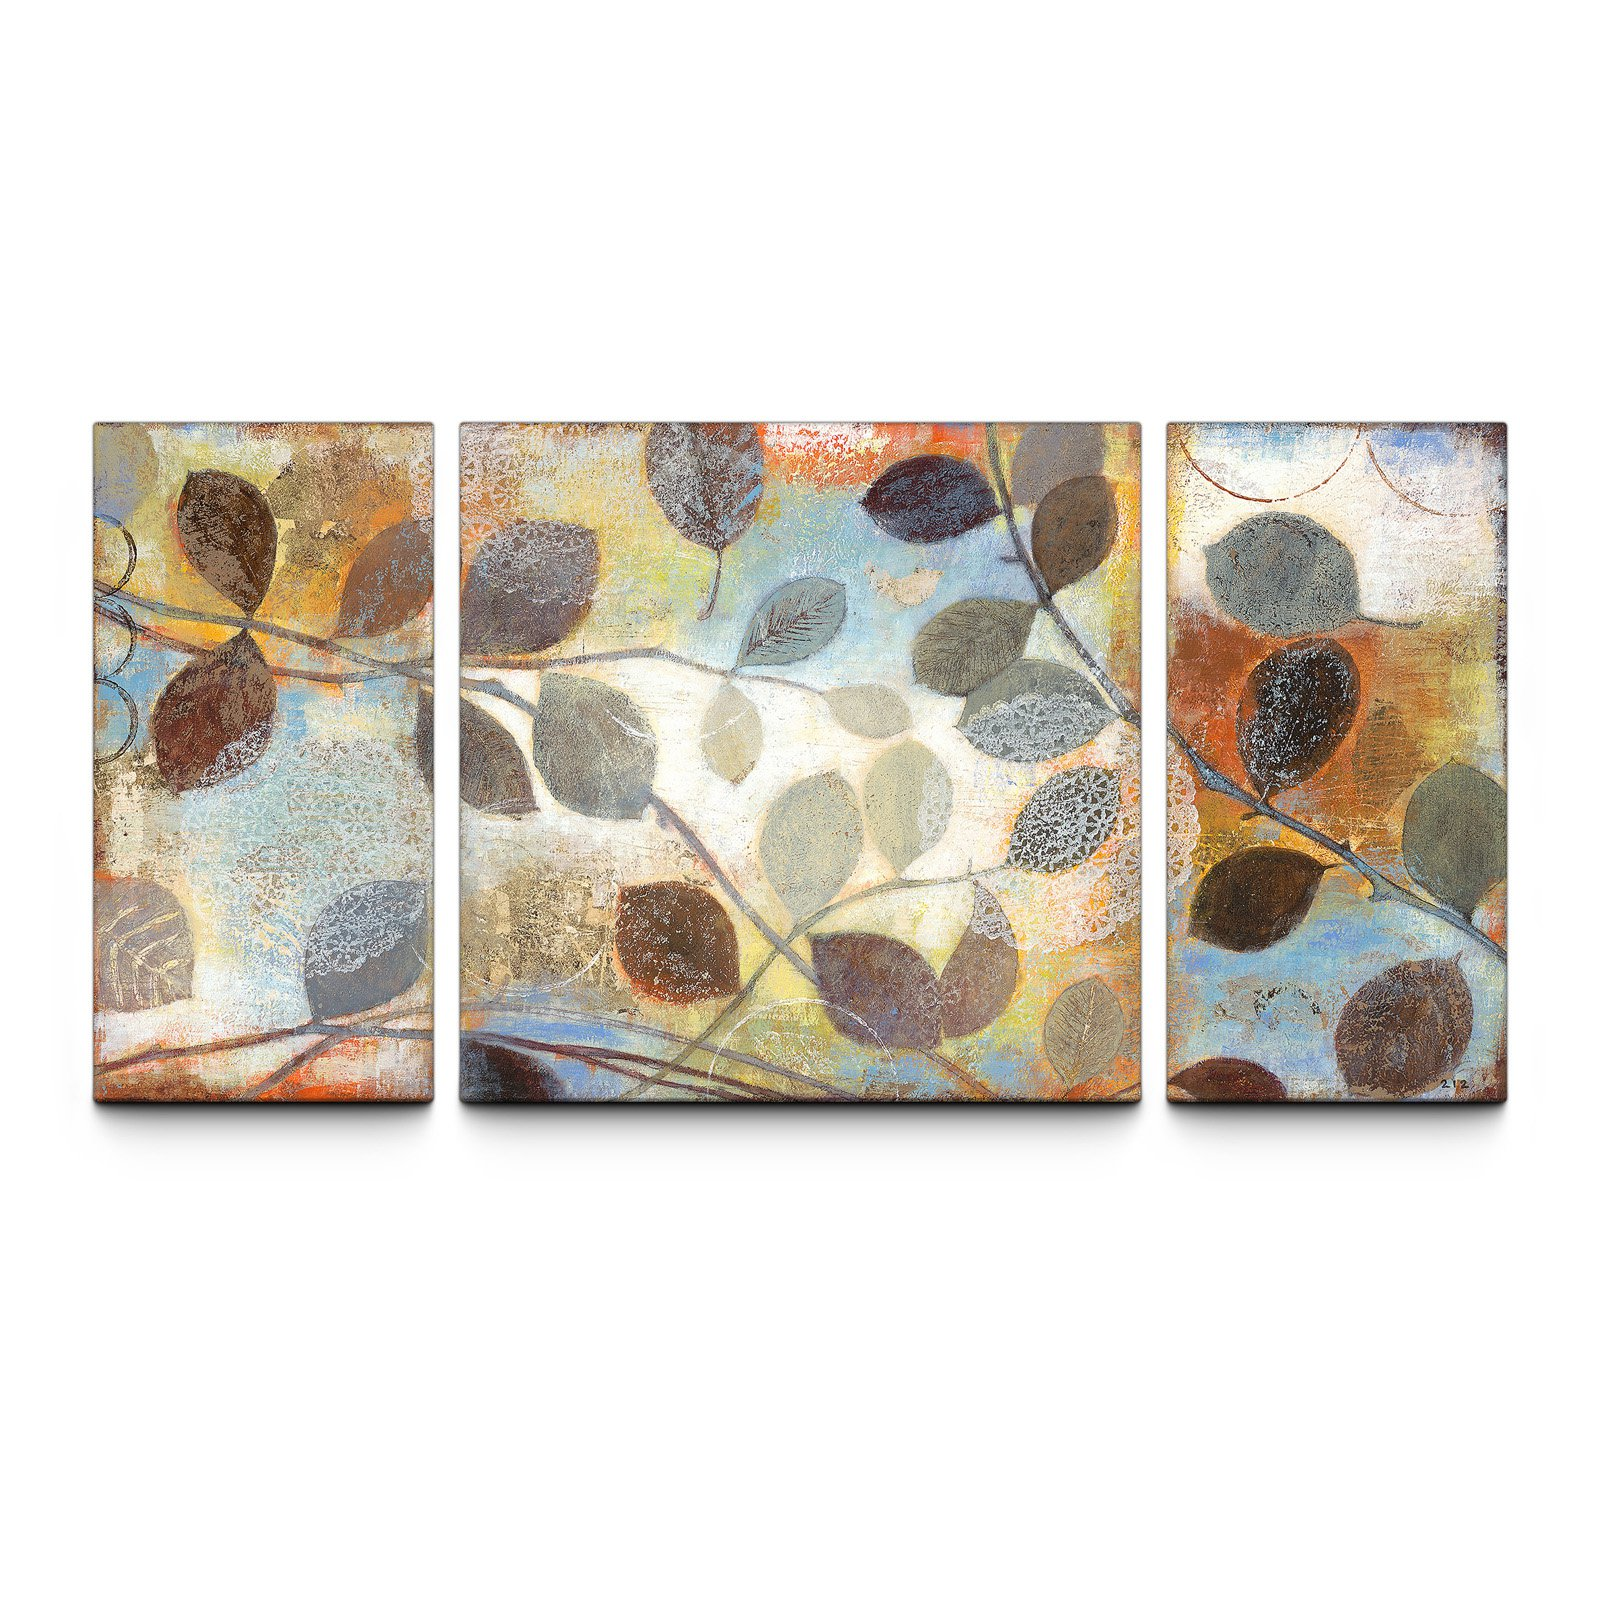 Triptych Wall Art autumn muse 30 x 60 textured canvas art print triptych - walmart